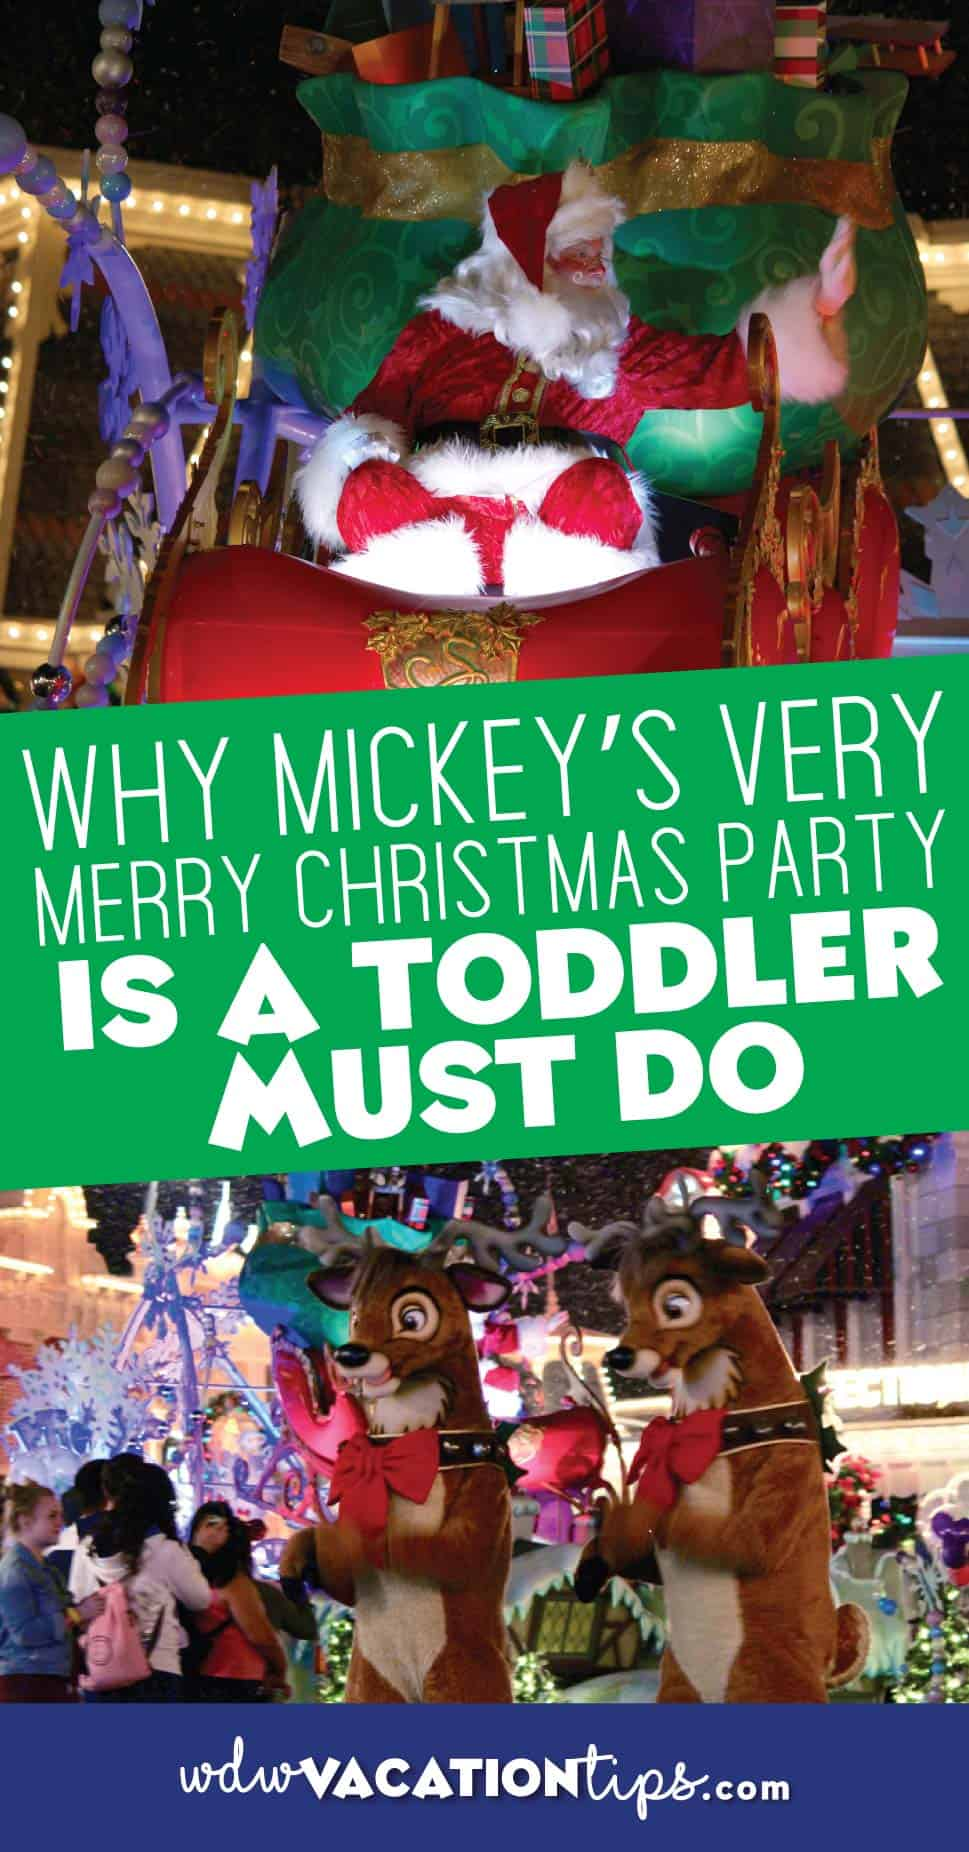 Mickeys Very Merry C